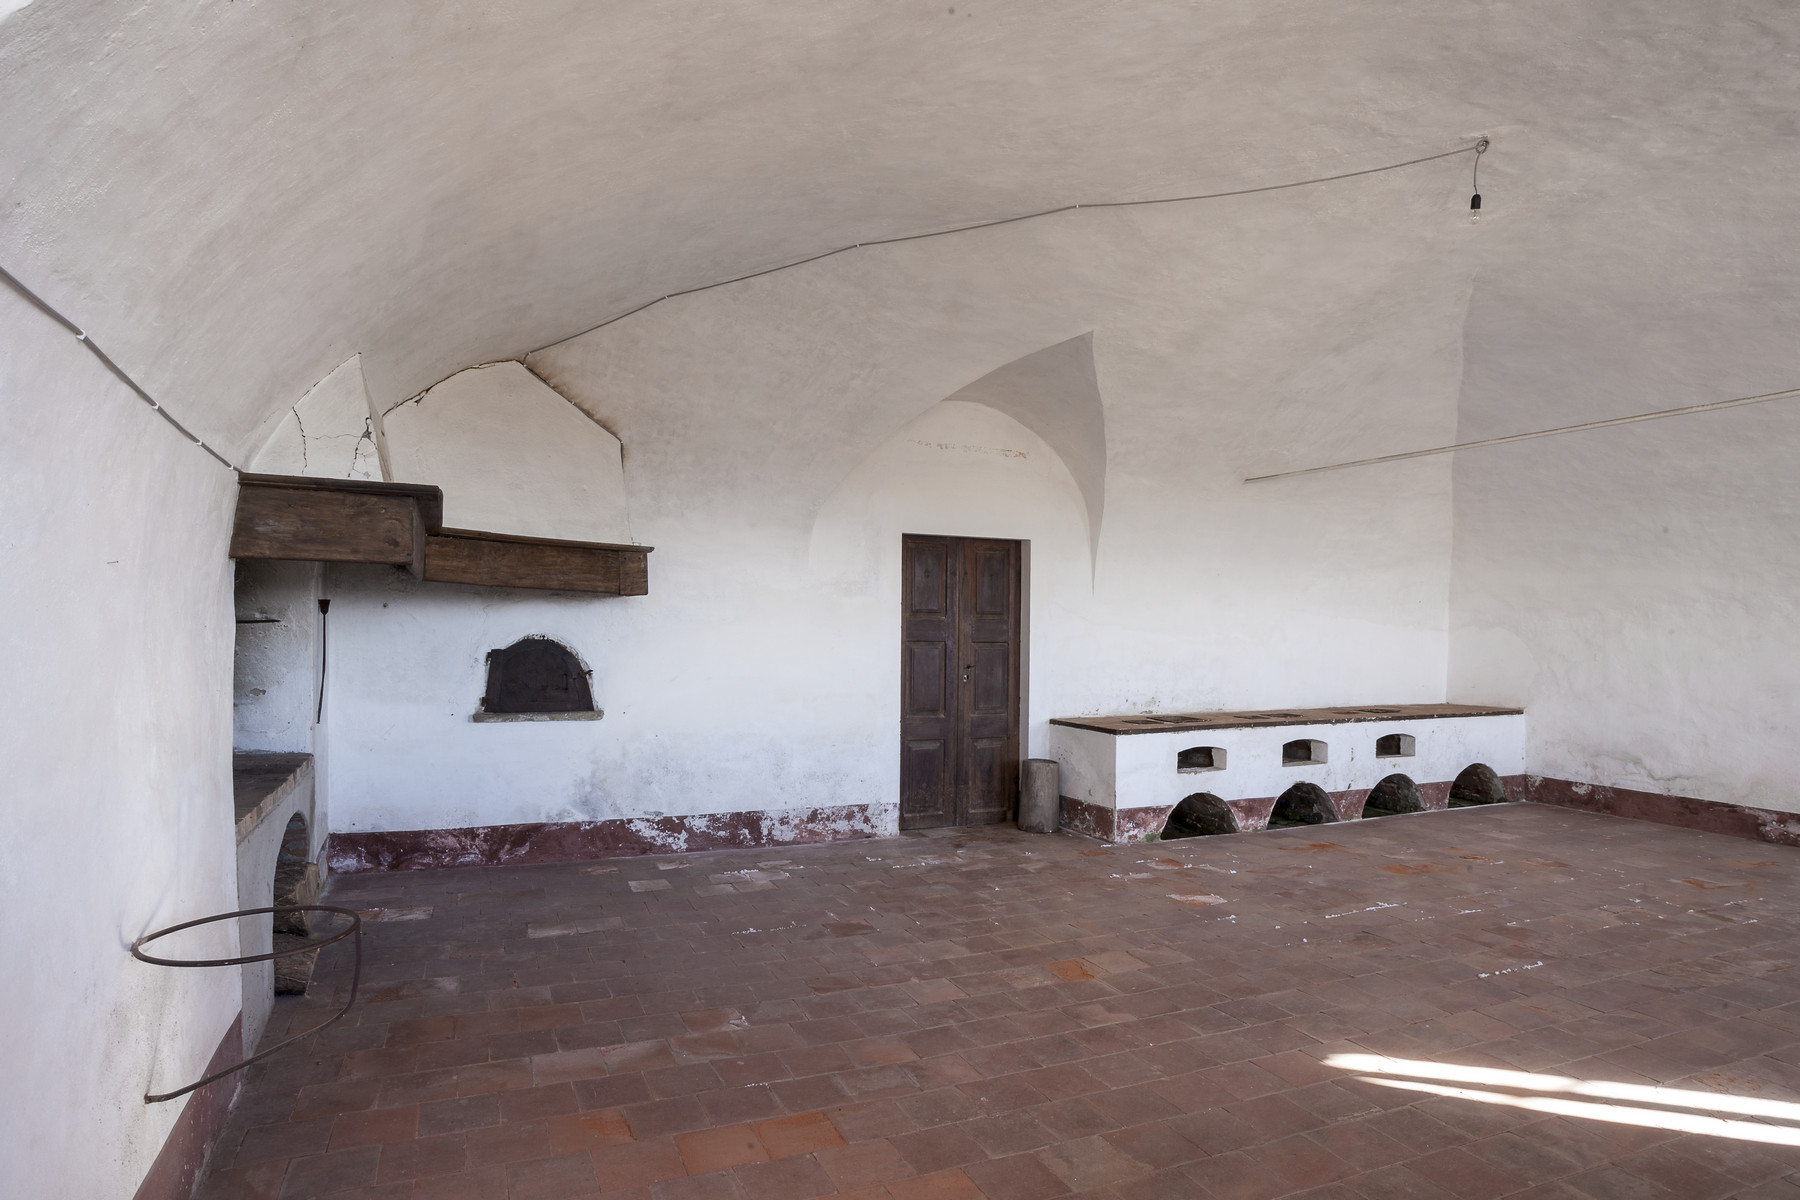 Additional photo for property listing at Majestic medieval castle in San Giorgio Canavese via Piave salita al castello San Giorgio Canavese, Turin 10090 Italien